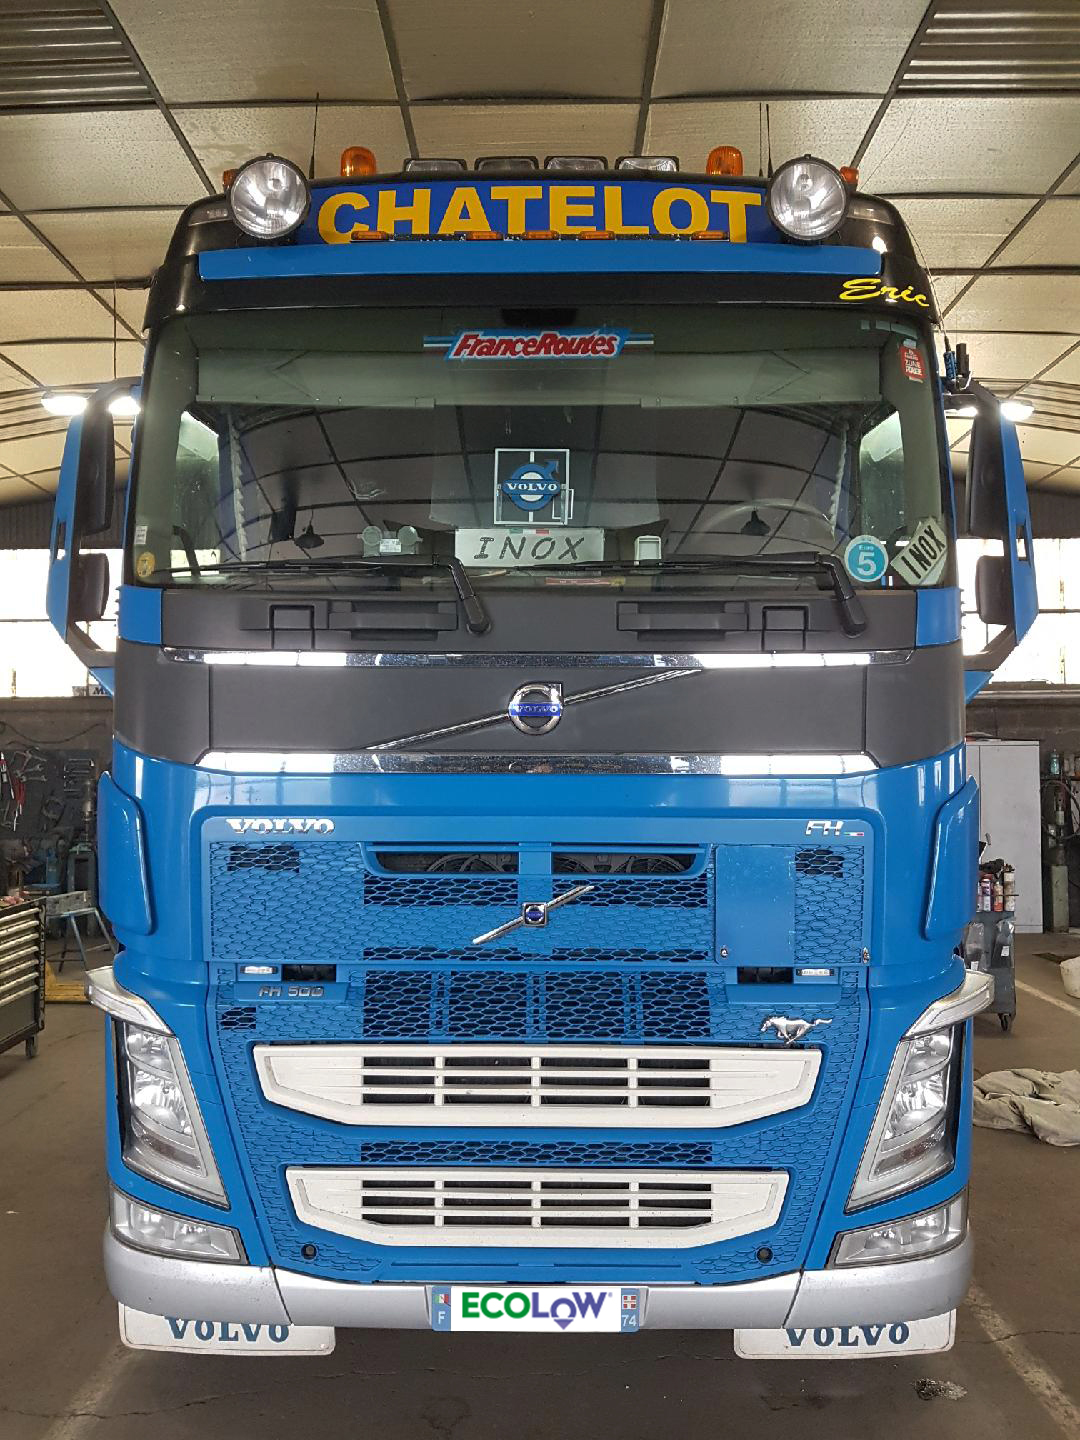 Transports CHATELOT